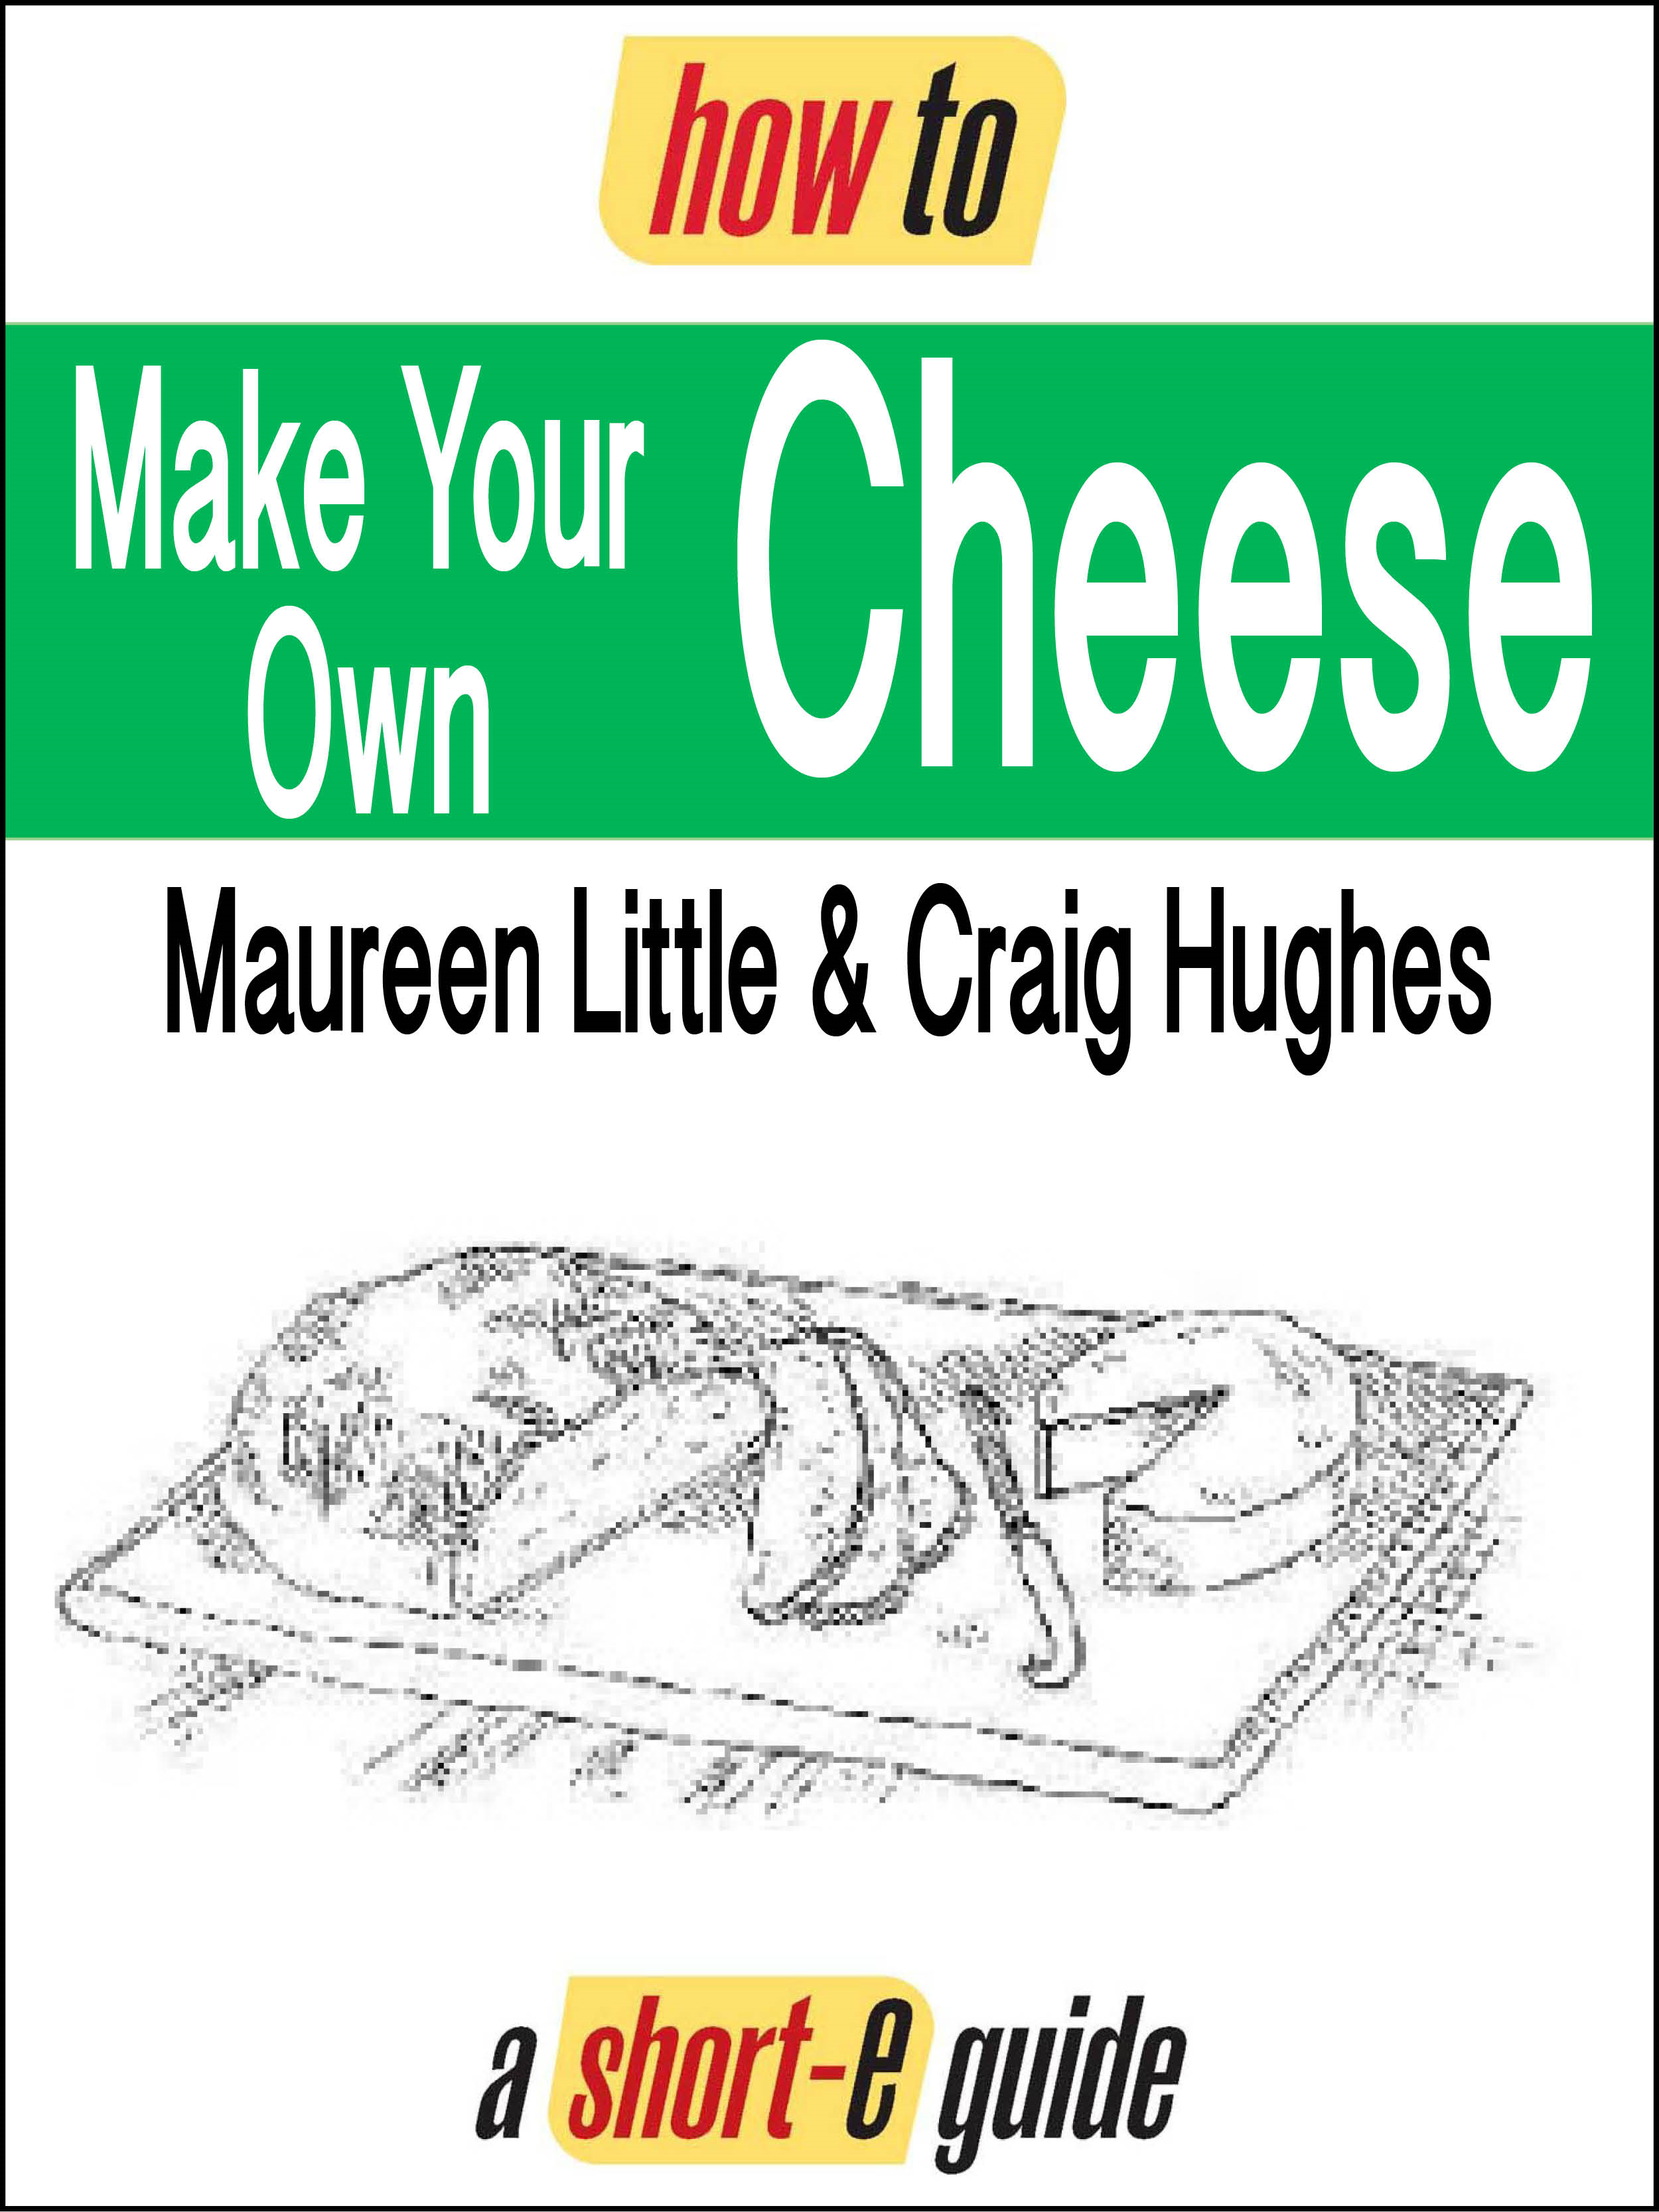 How to Make Your Own Cheese (Short-e Guide)